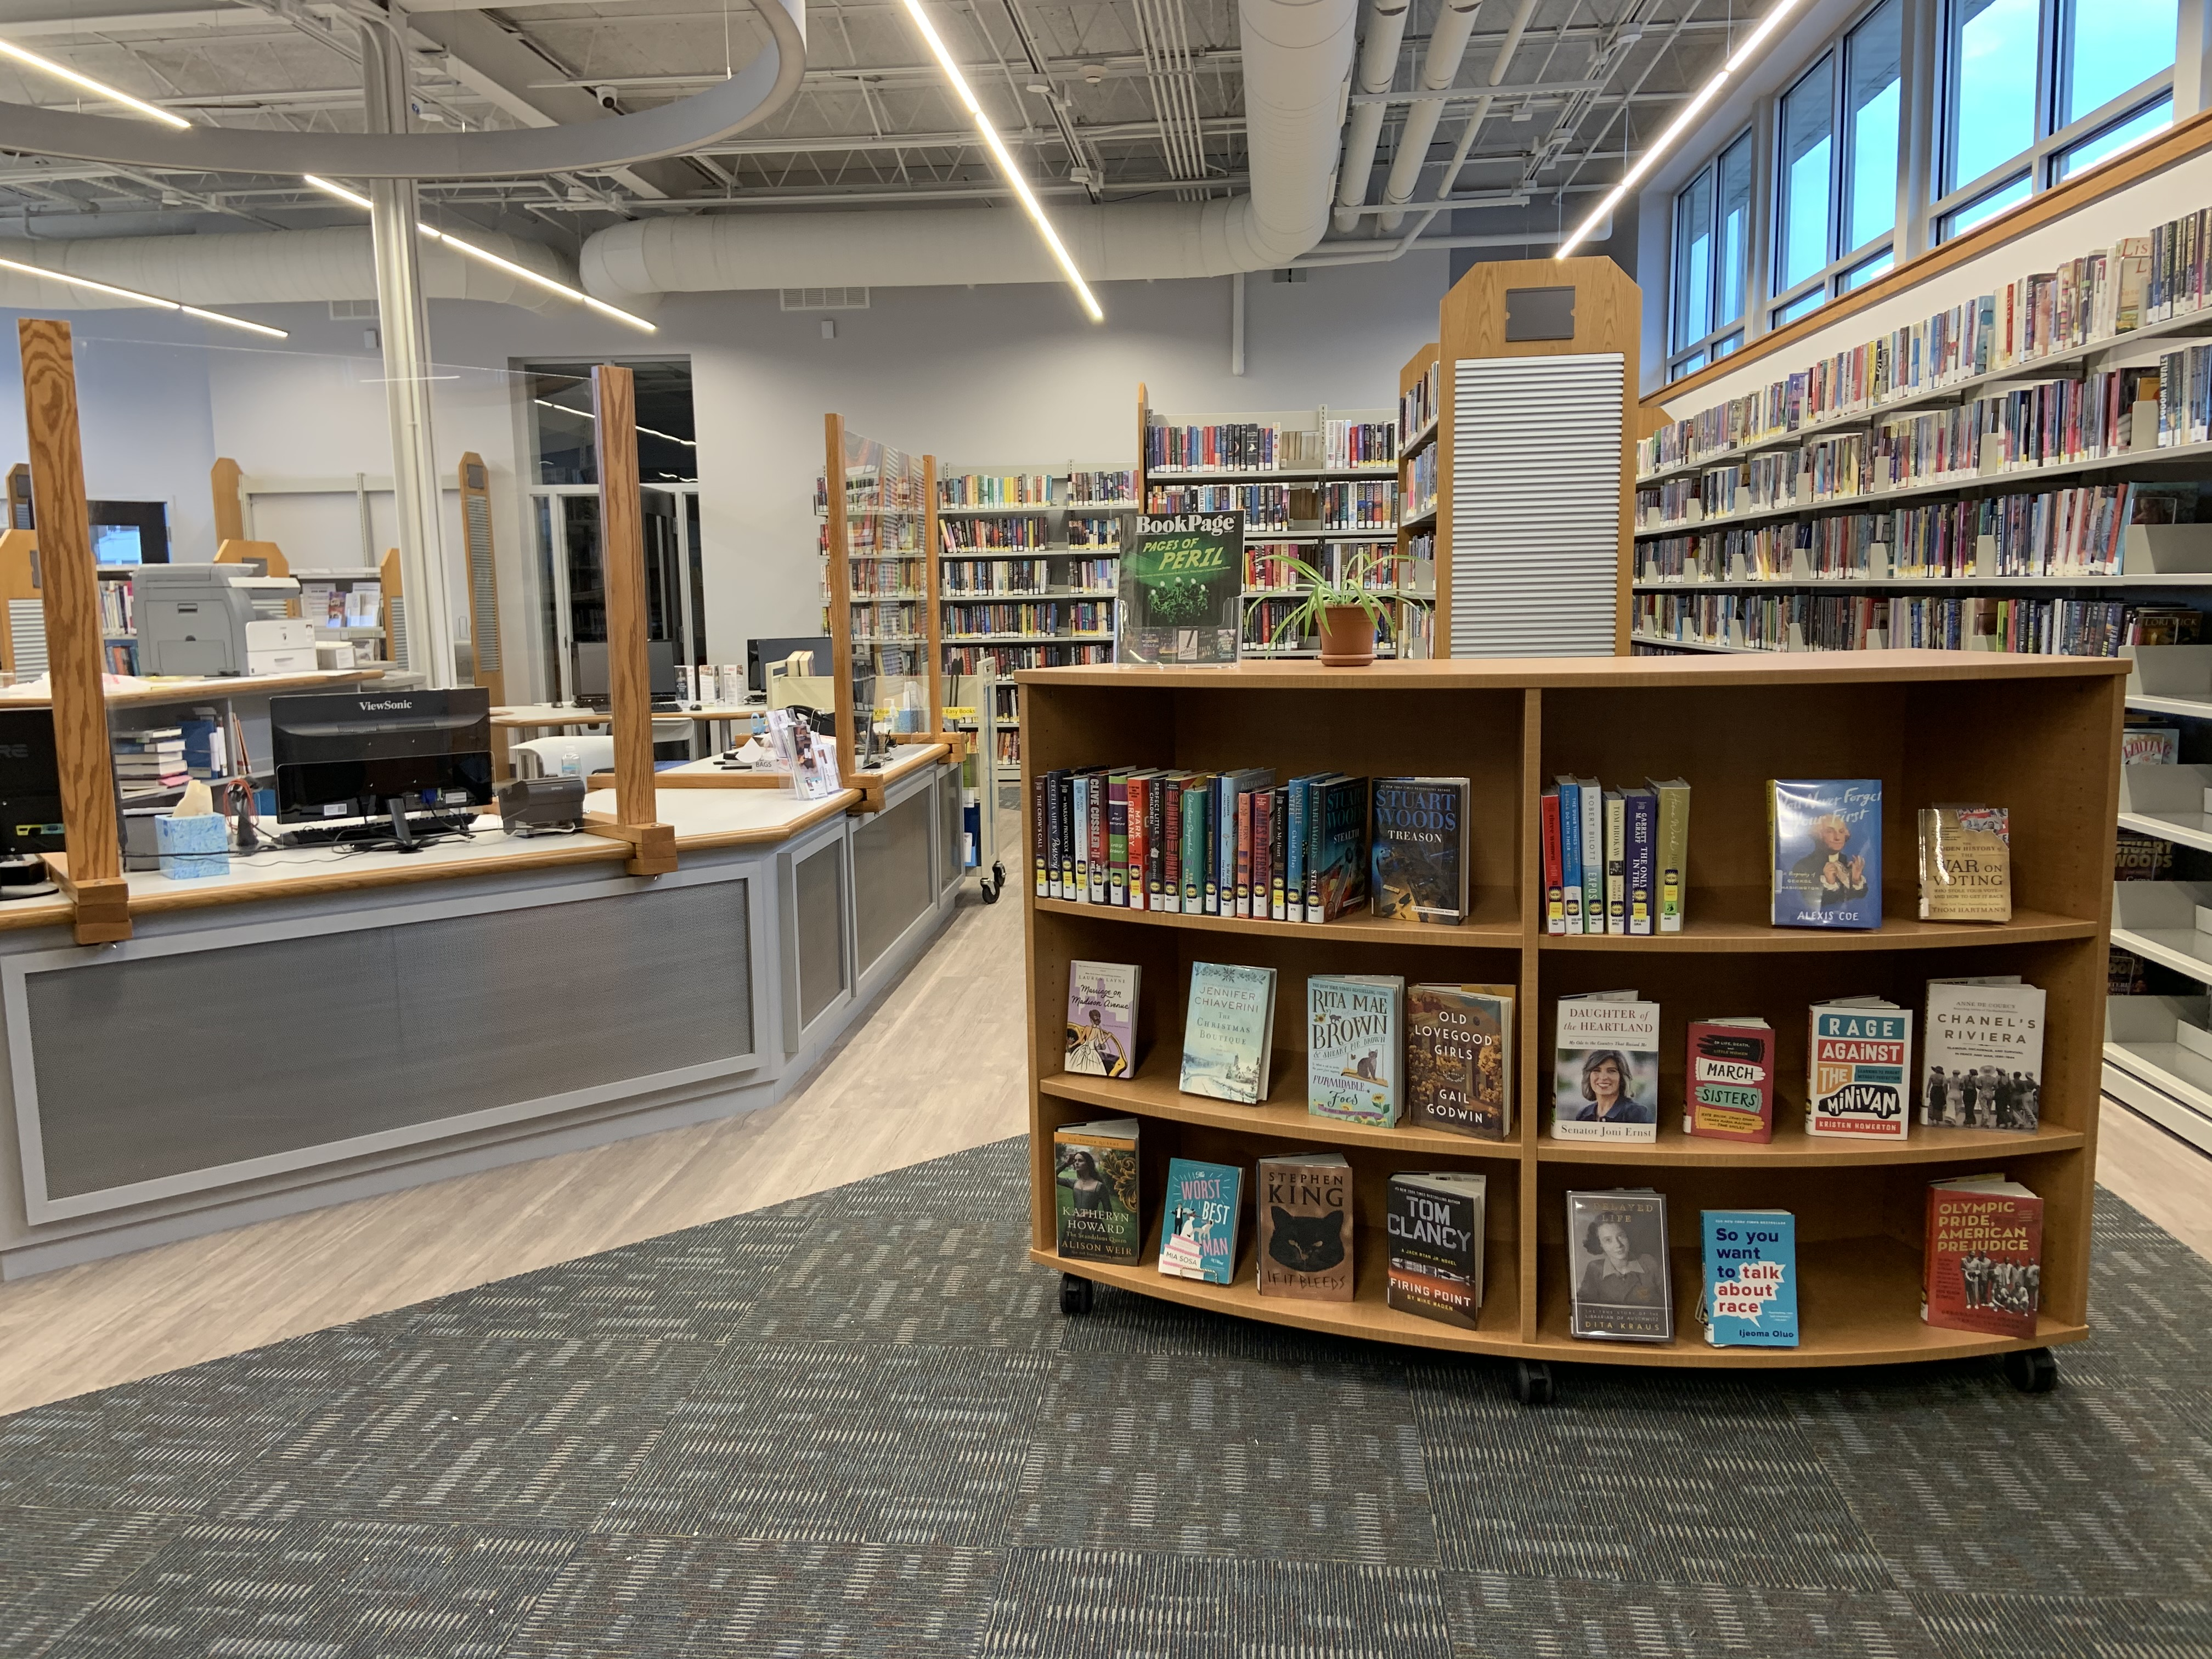 The New Fleetwood Library